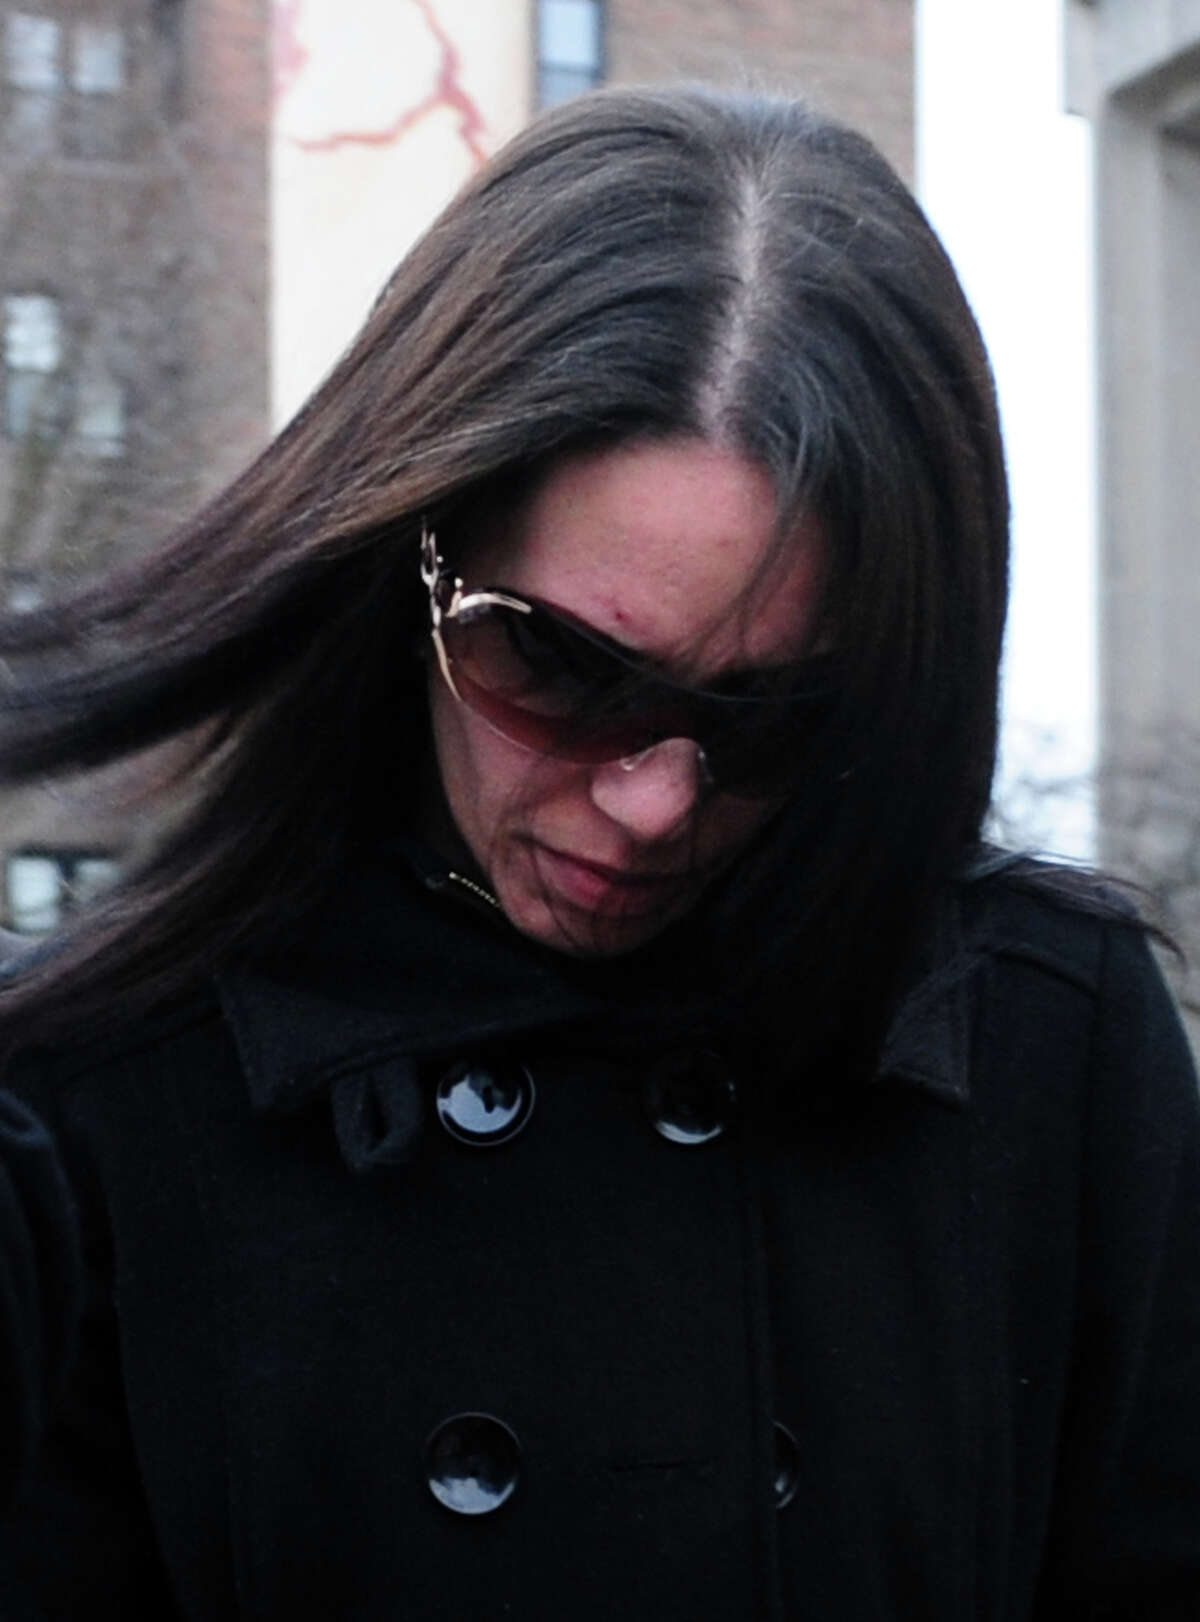 Nouel Alba leaves the federal courthouse in Bridgeport, Conn. Thursday, Jan. 17, 2013. U.S. District Judge Michael Shea will decide on Tuesday, Oct. 15, 2013, whether Alba of the Bronx, N.Y. will spend time in federal prison or be placed on probation.